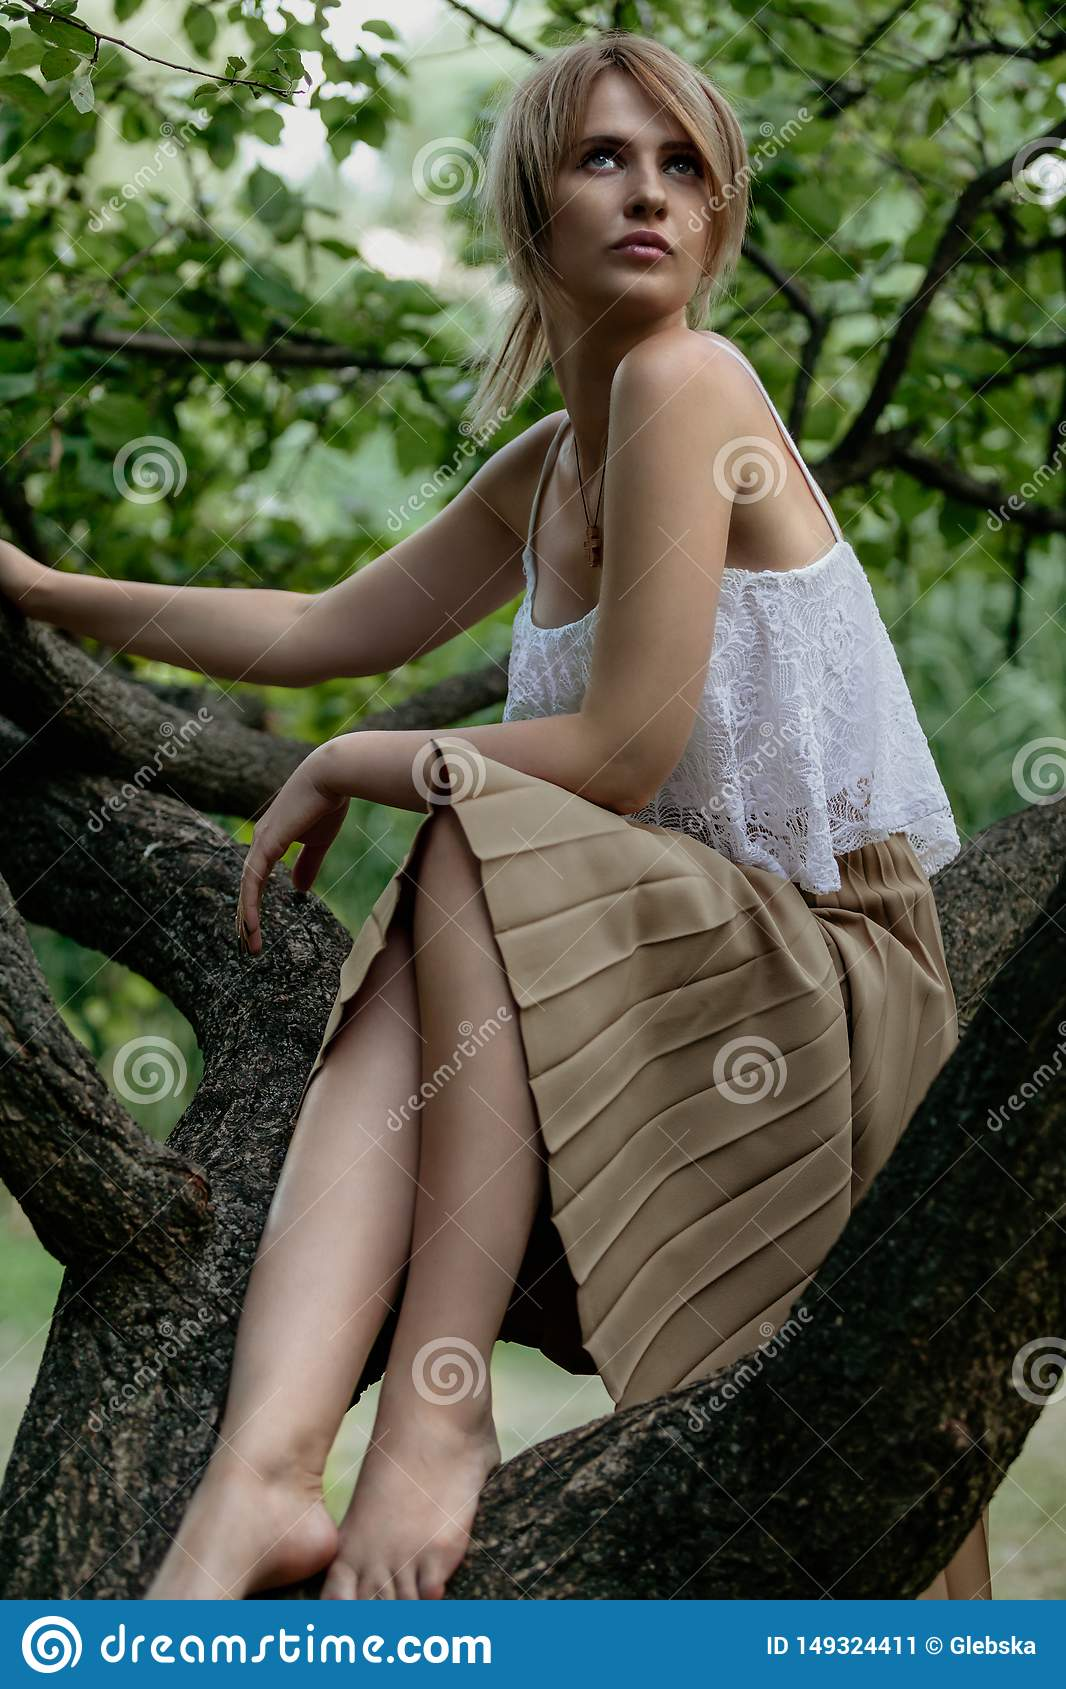 https://thumbs.dreamstime.com/z/portrait-nature-slender-barefoot-girl-white-top-sitting-tree-branch-summer-day-cute-blonde-sits-149324411.jpg